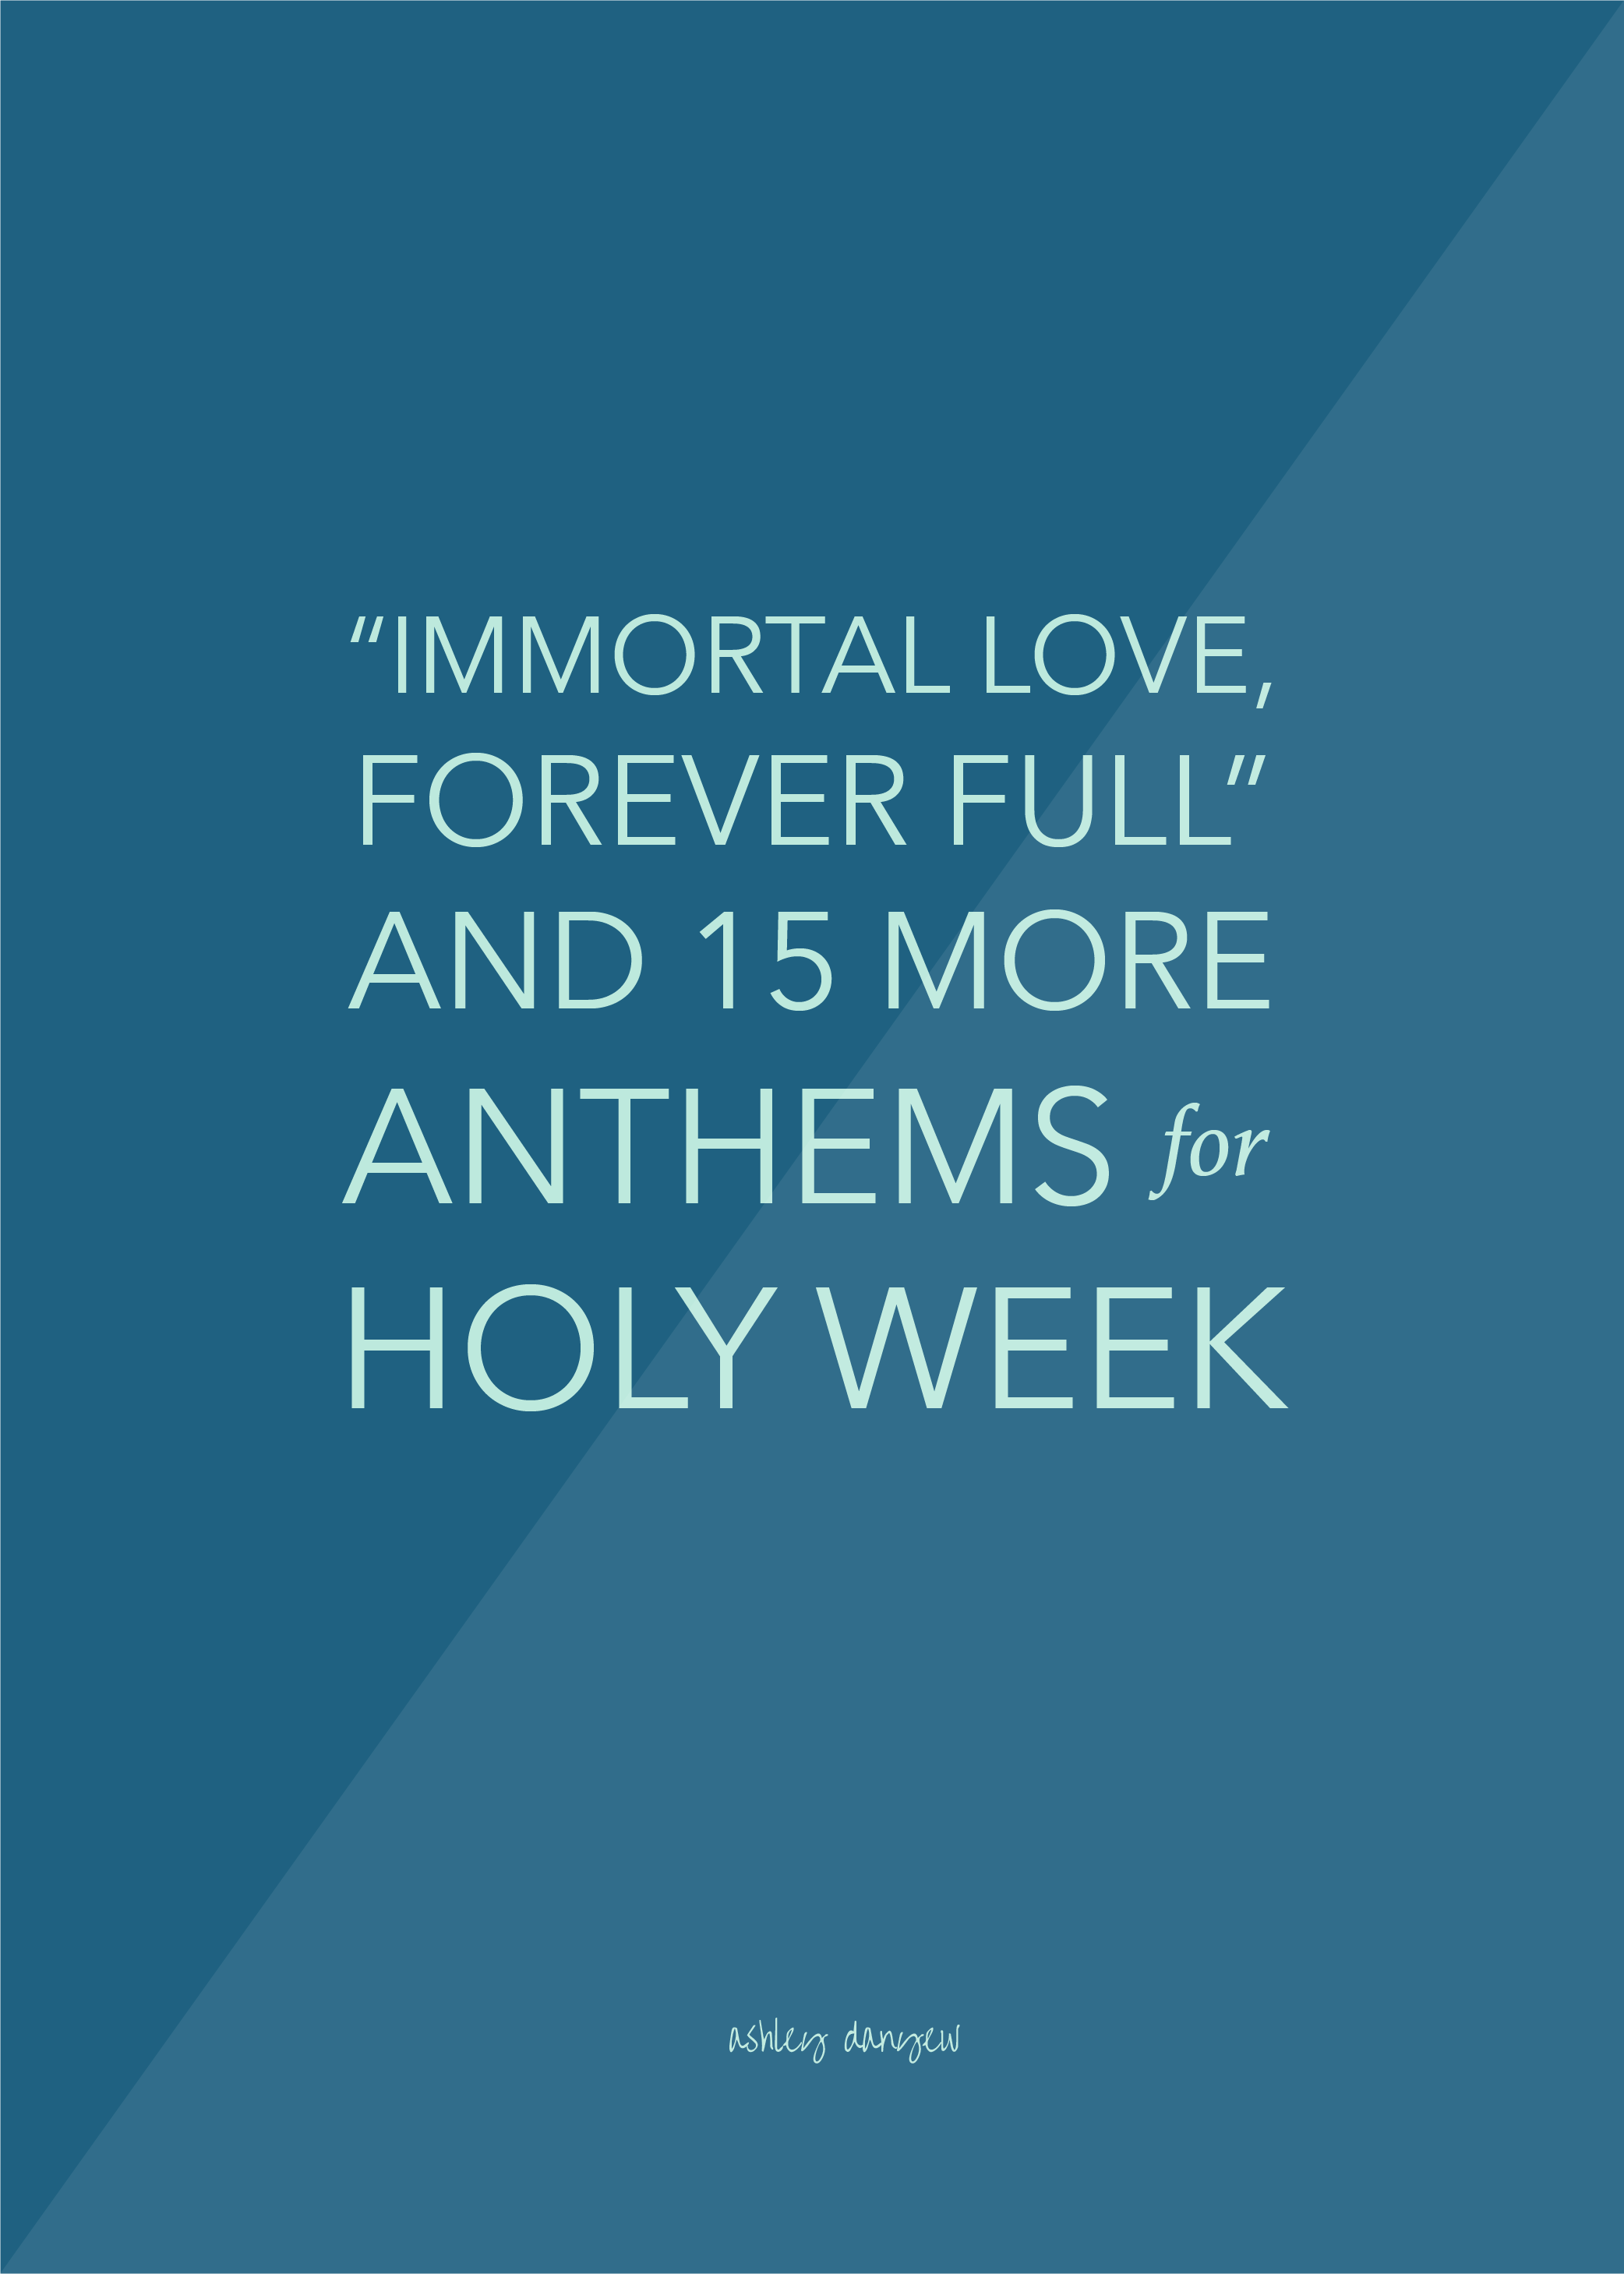 Immortal Love, Forever Full and 15 More Anthems for Holy Week-06.png